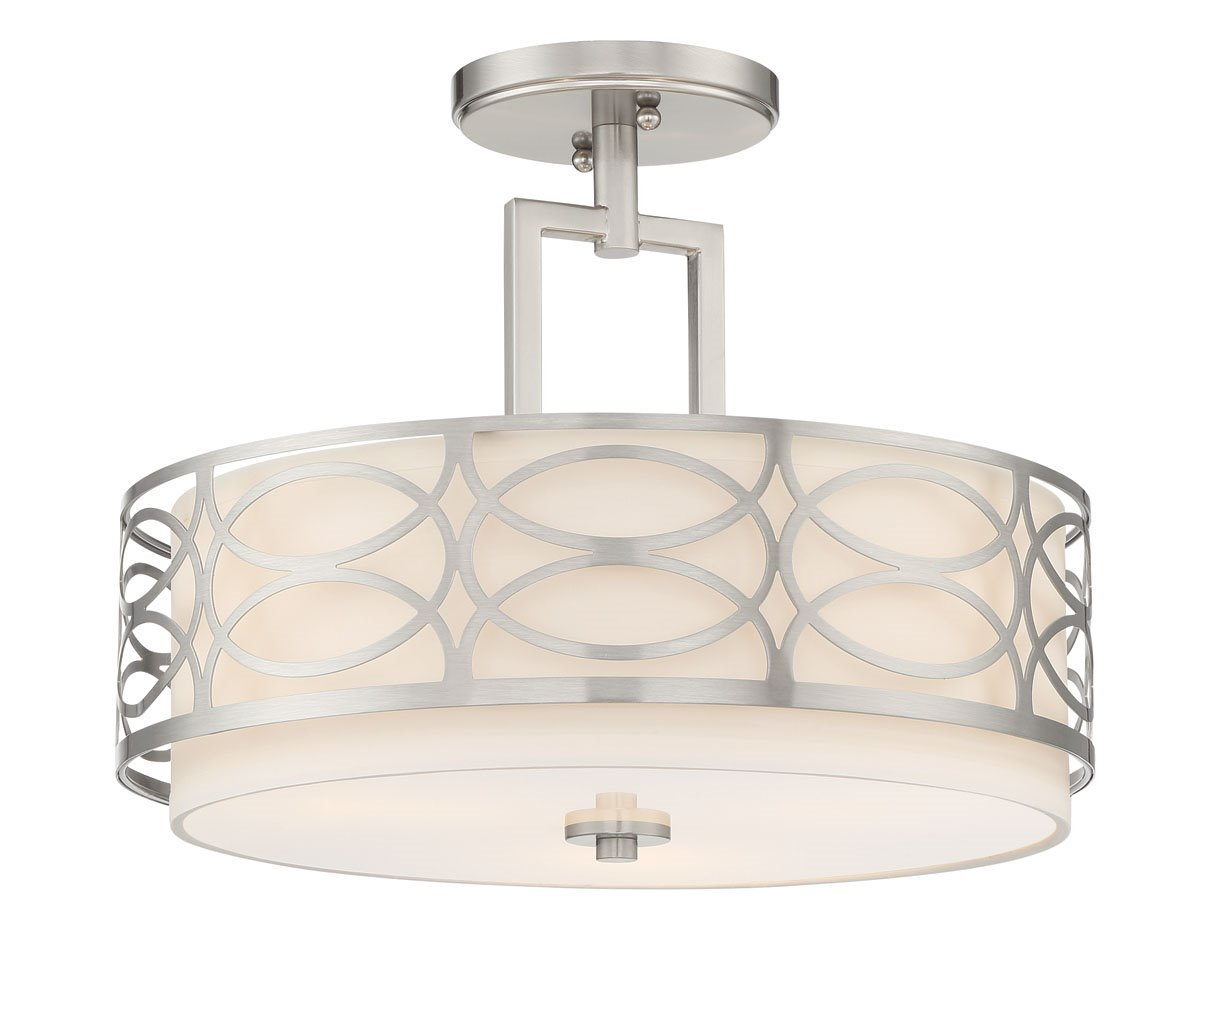 Kira Home Sienna 15'' 3-Light Semi Flush Mount Ceiling Light, White Fabric Shade + Glass Diffuser, Brushed Nickel Finish